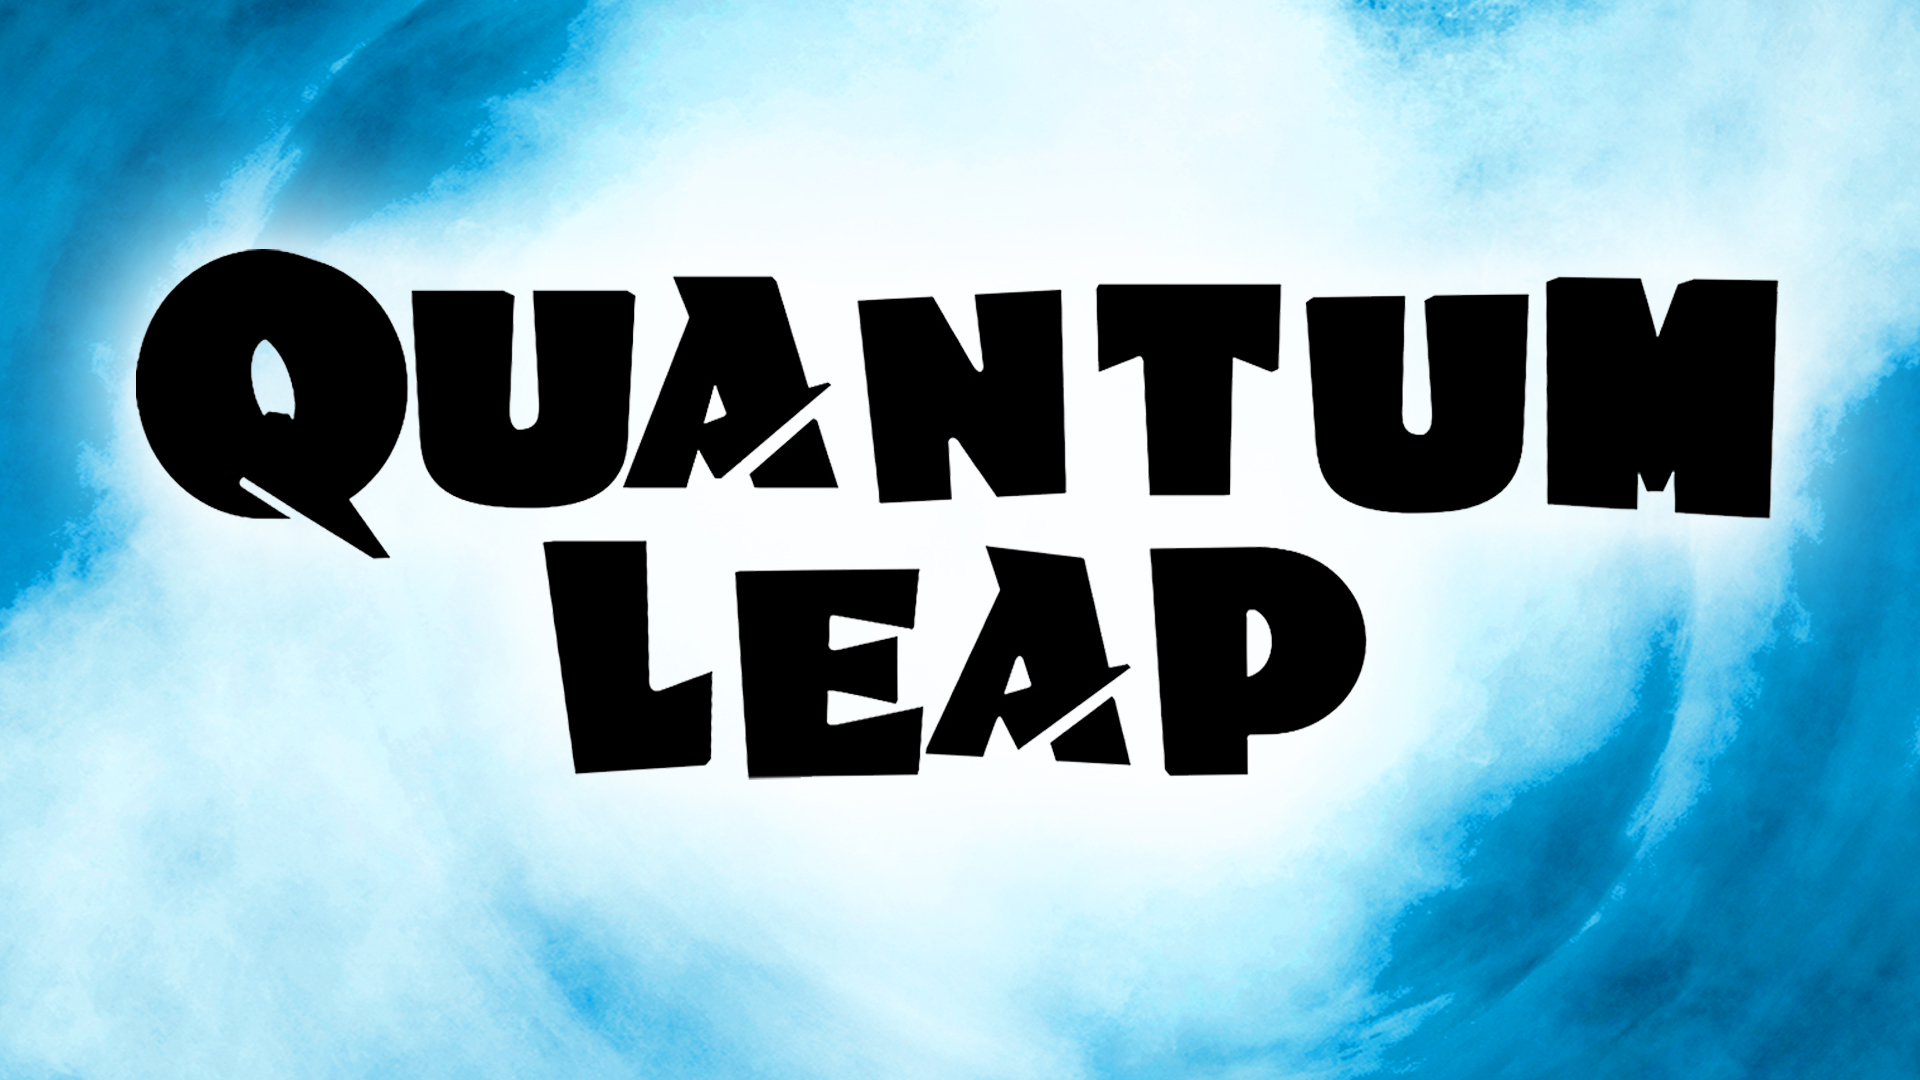 Quantum Leap - Season 1 Episode 6 Online for Free - #1